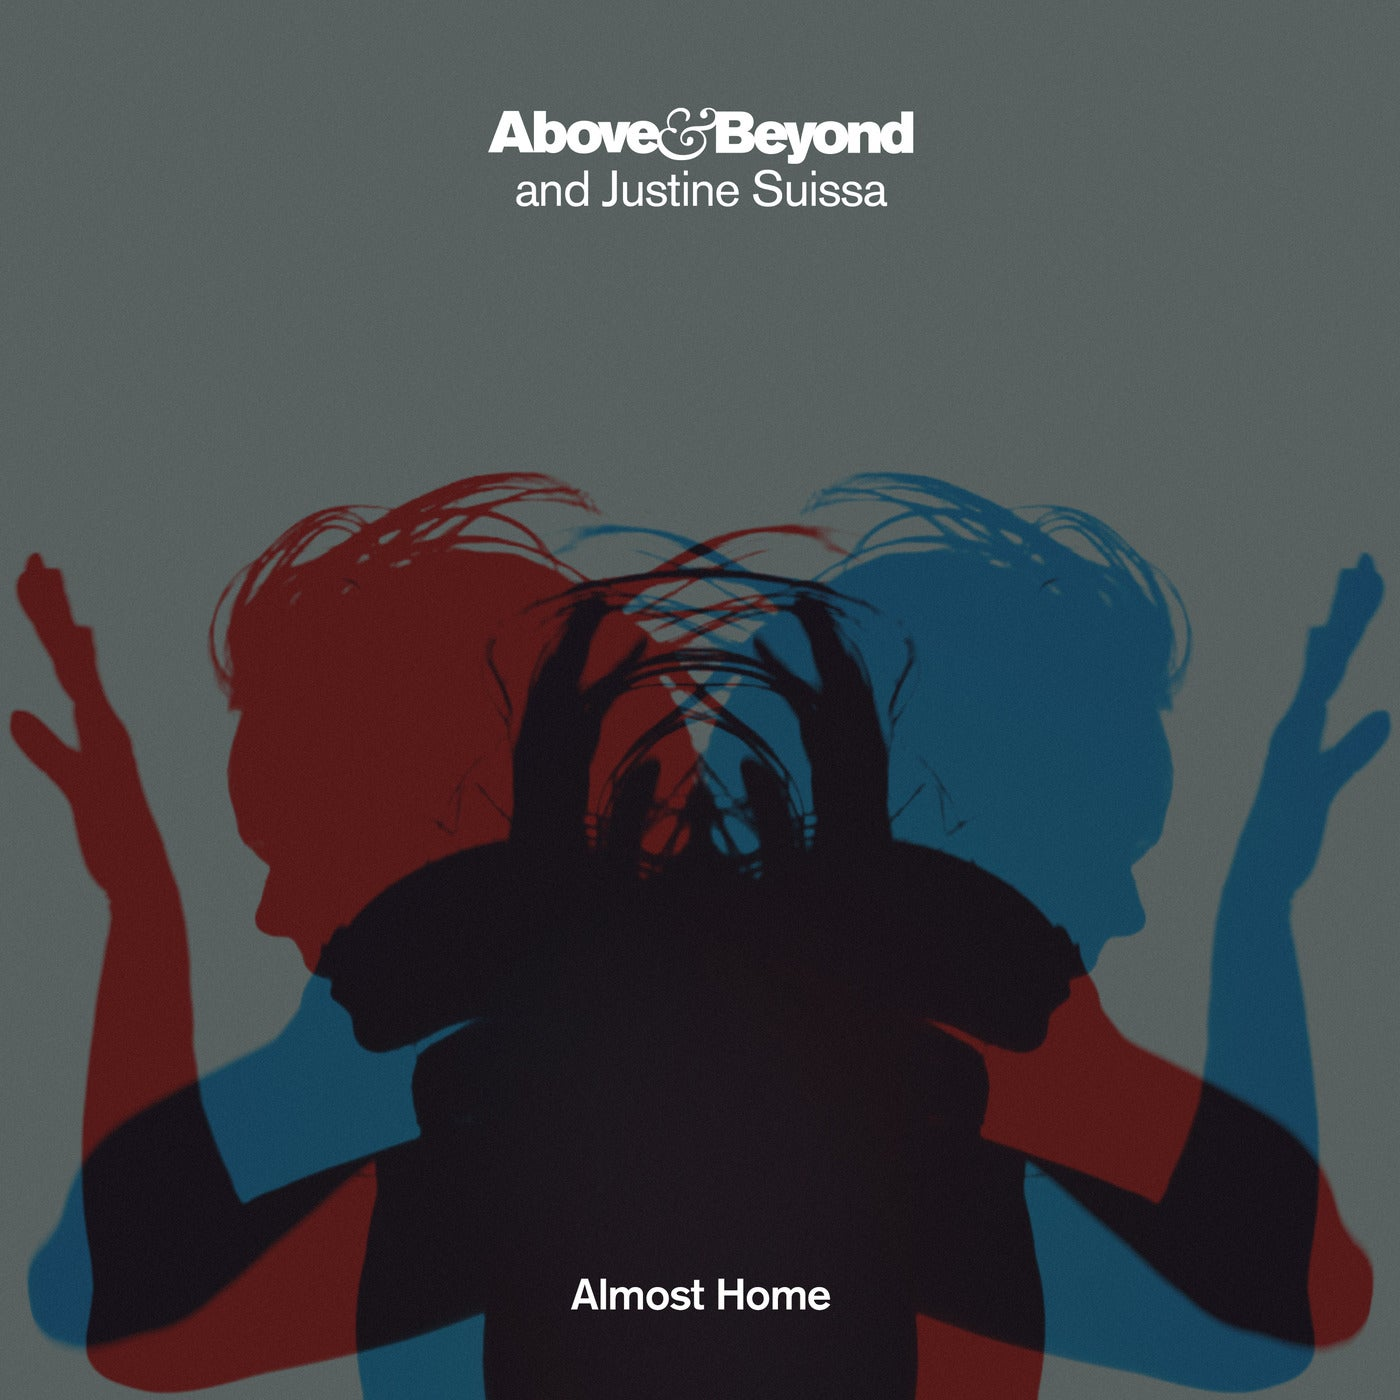 Almost Home (Above & Beyond Club Mix)